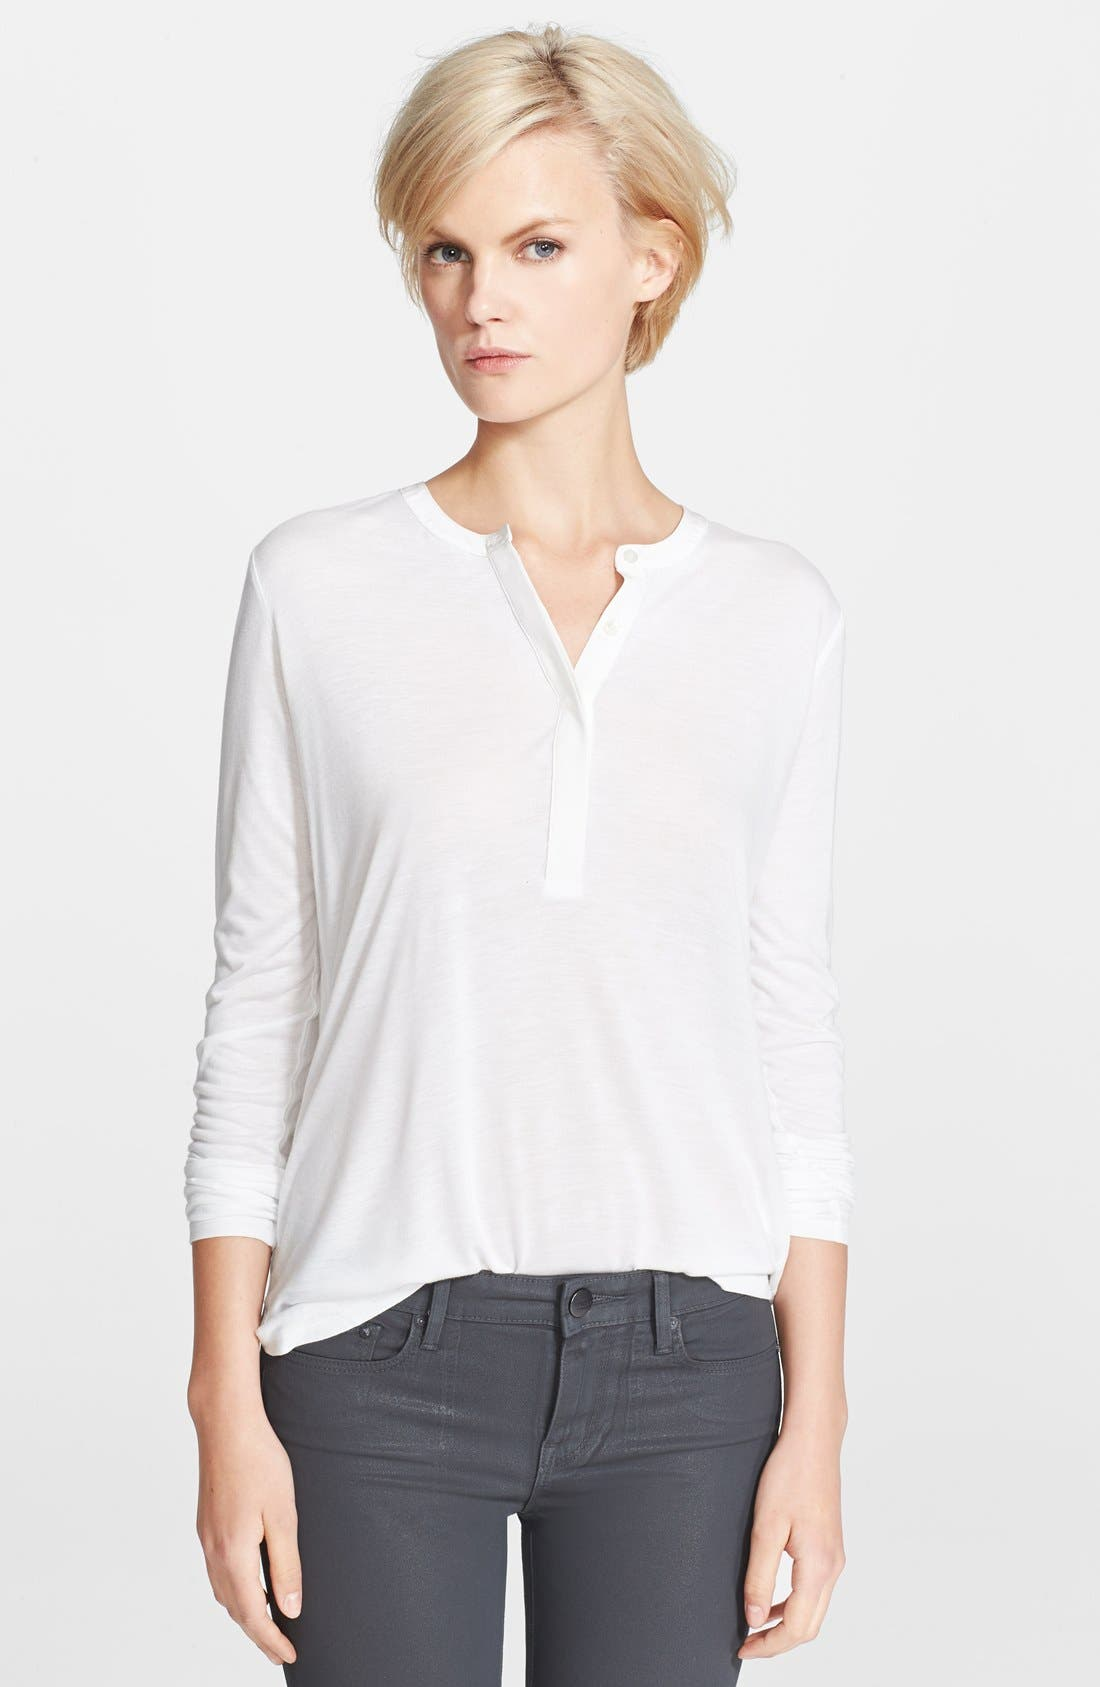 Alternate Image 1 Selected - Vince Long Sleeve Contrast Placket Henley Top